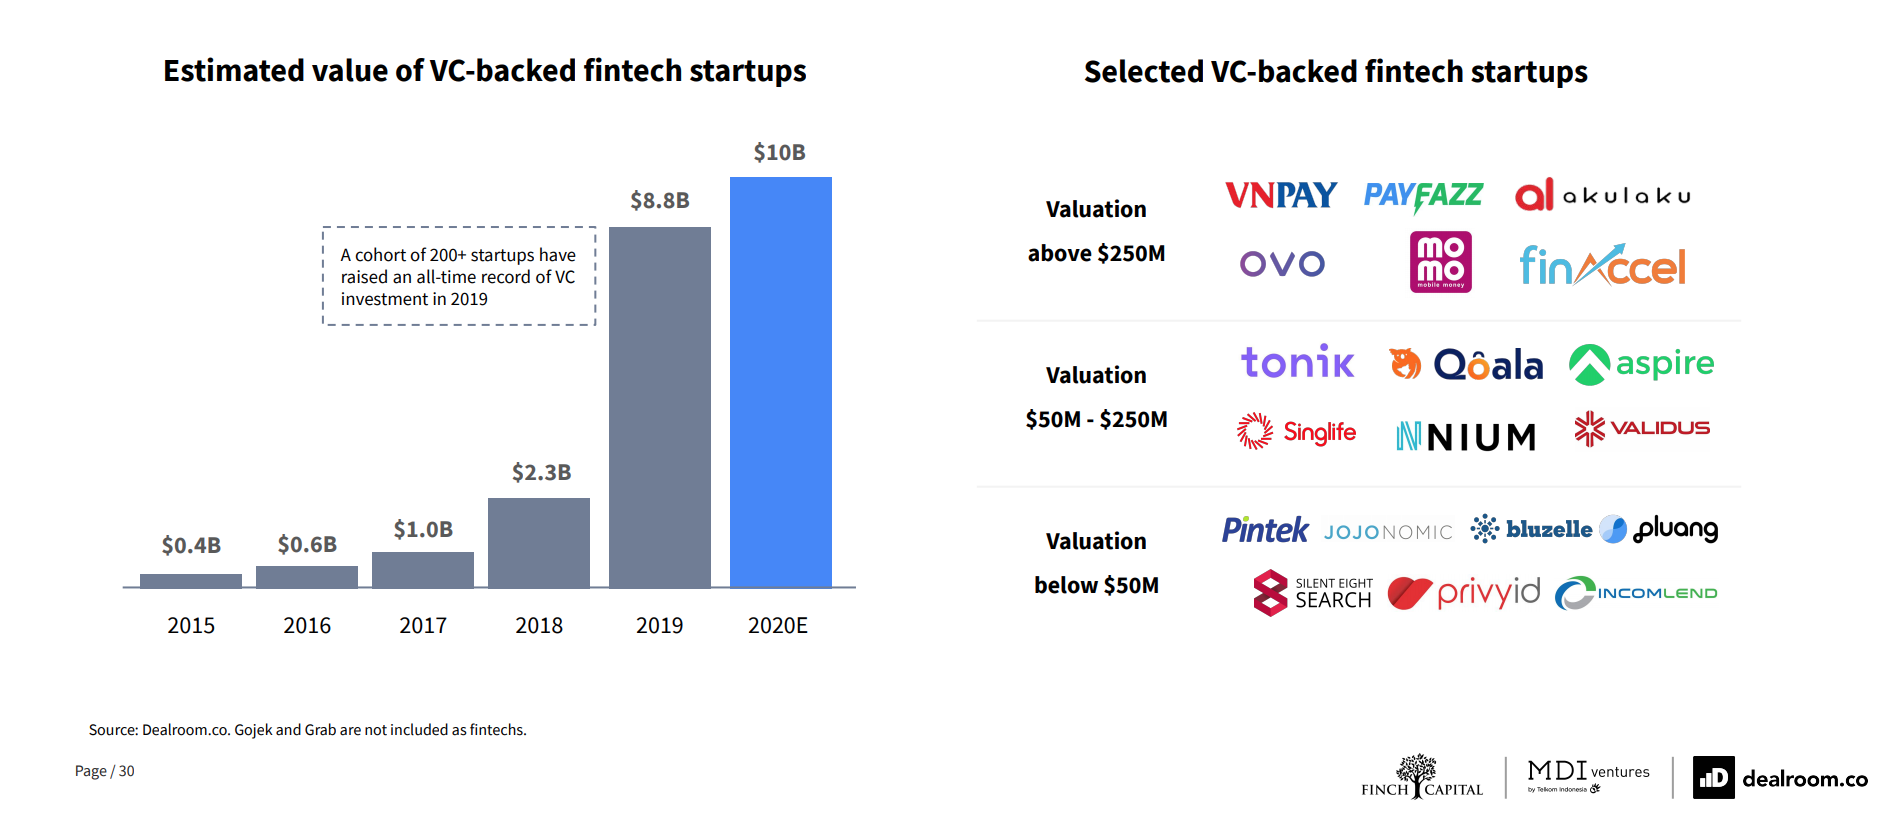 Southeast Asian fintech startups valuation, Source- The Future of Fintech in Southeast Asia, Dealroom, Finch Capital and MDI Ventures, Sept 20